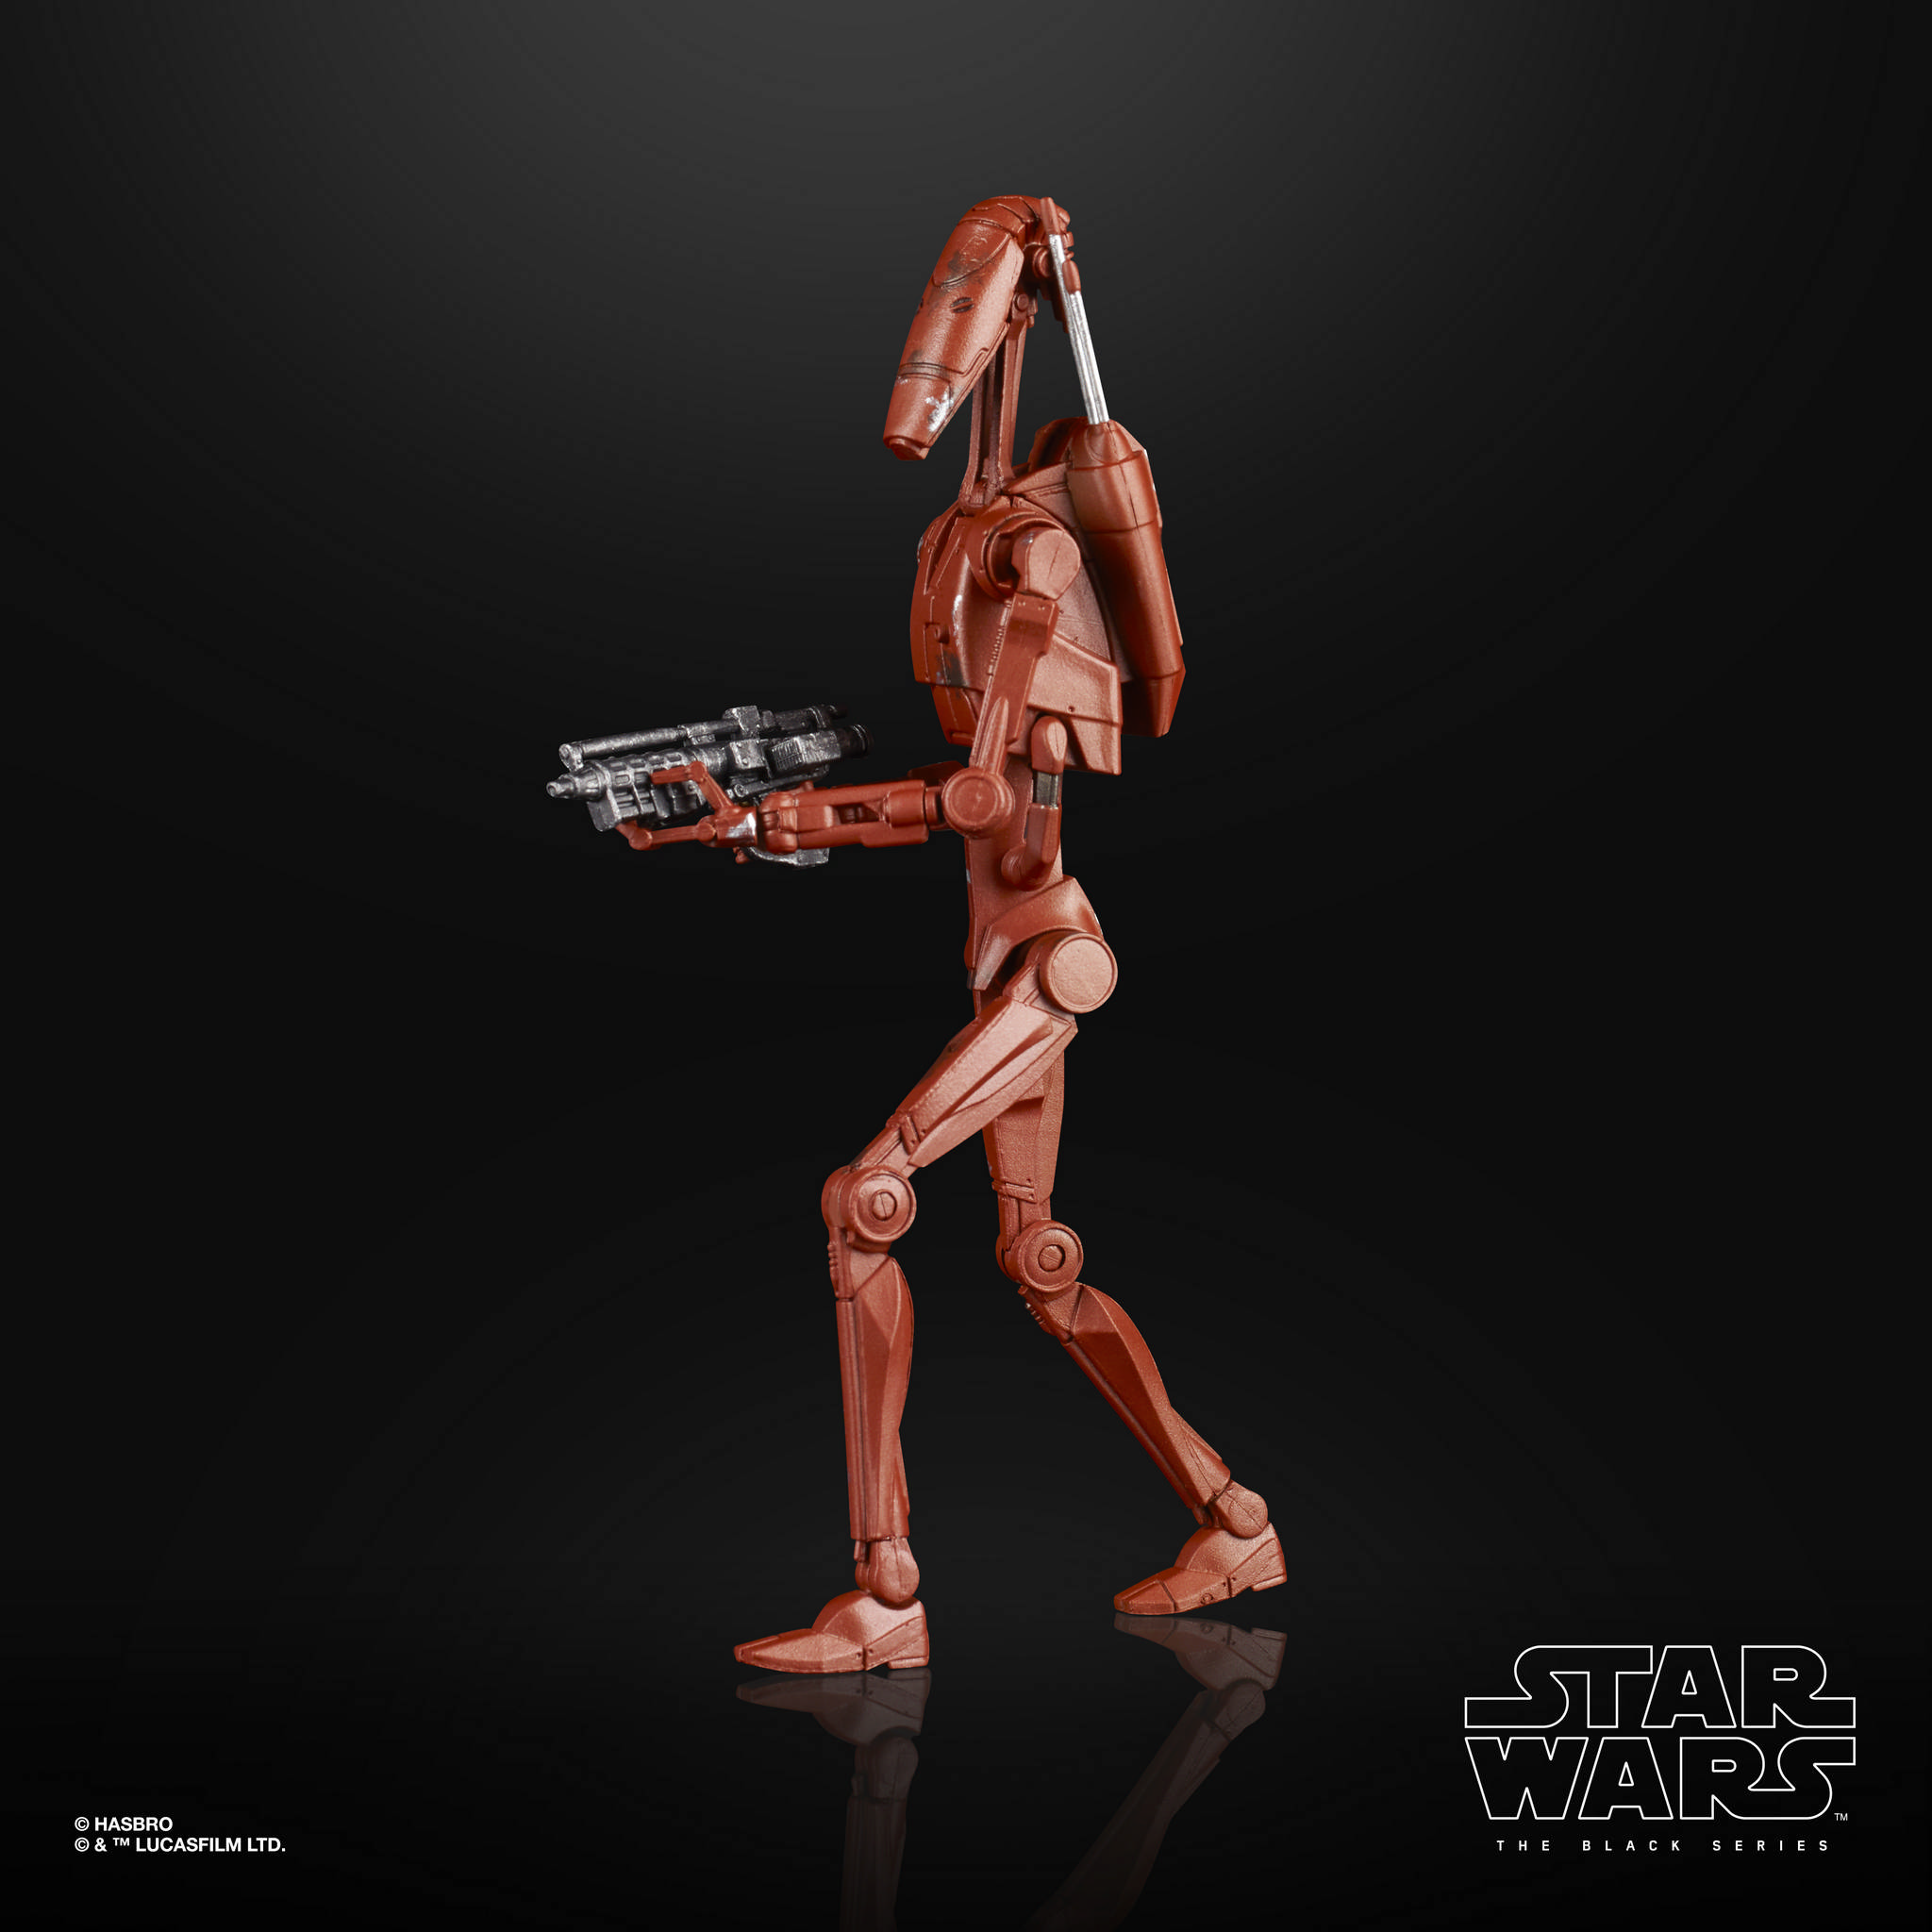 STAR WARS THE BLACK SERIES 6 INCH BATTLE DROID Figure 2